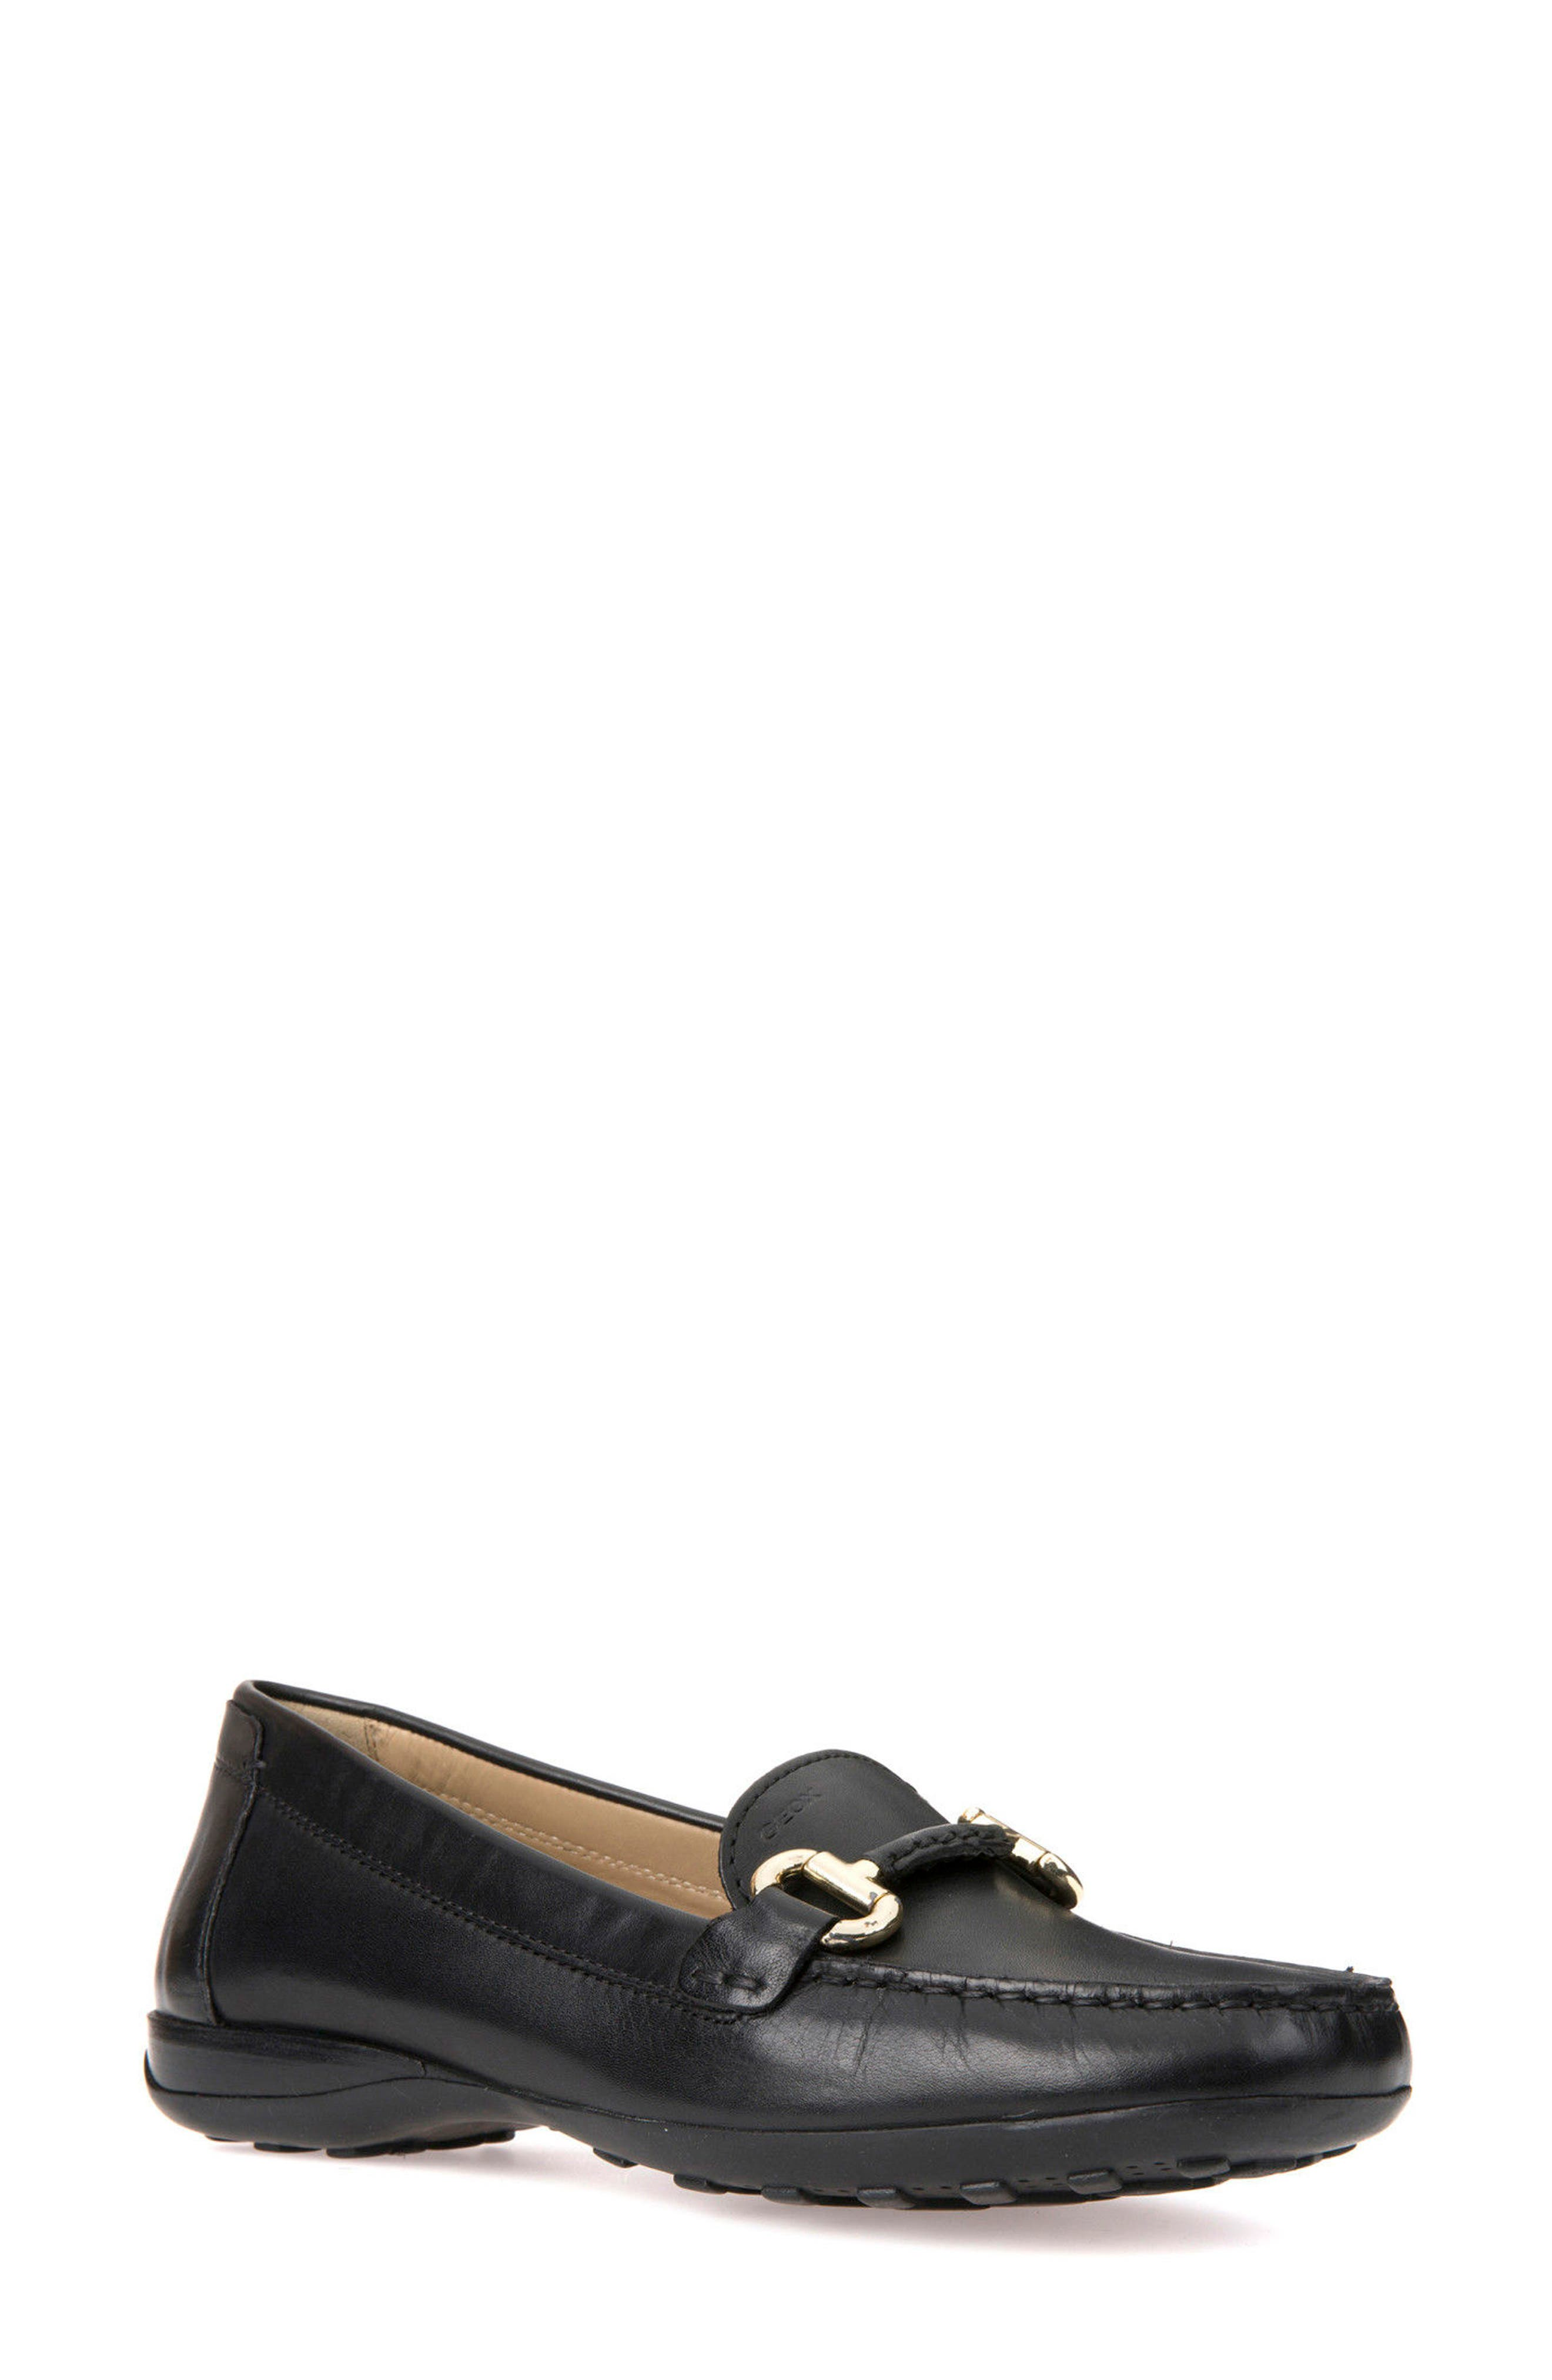 Alternate Image 1 Selected - Geox Euro 67 Loafer (Women)